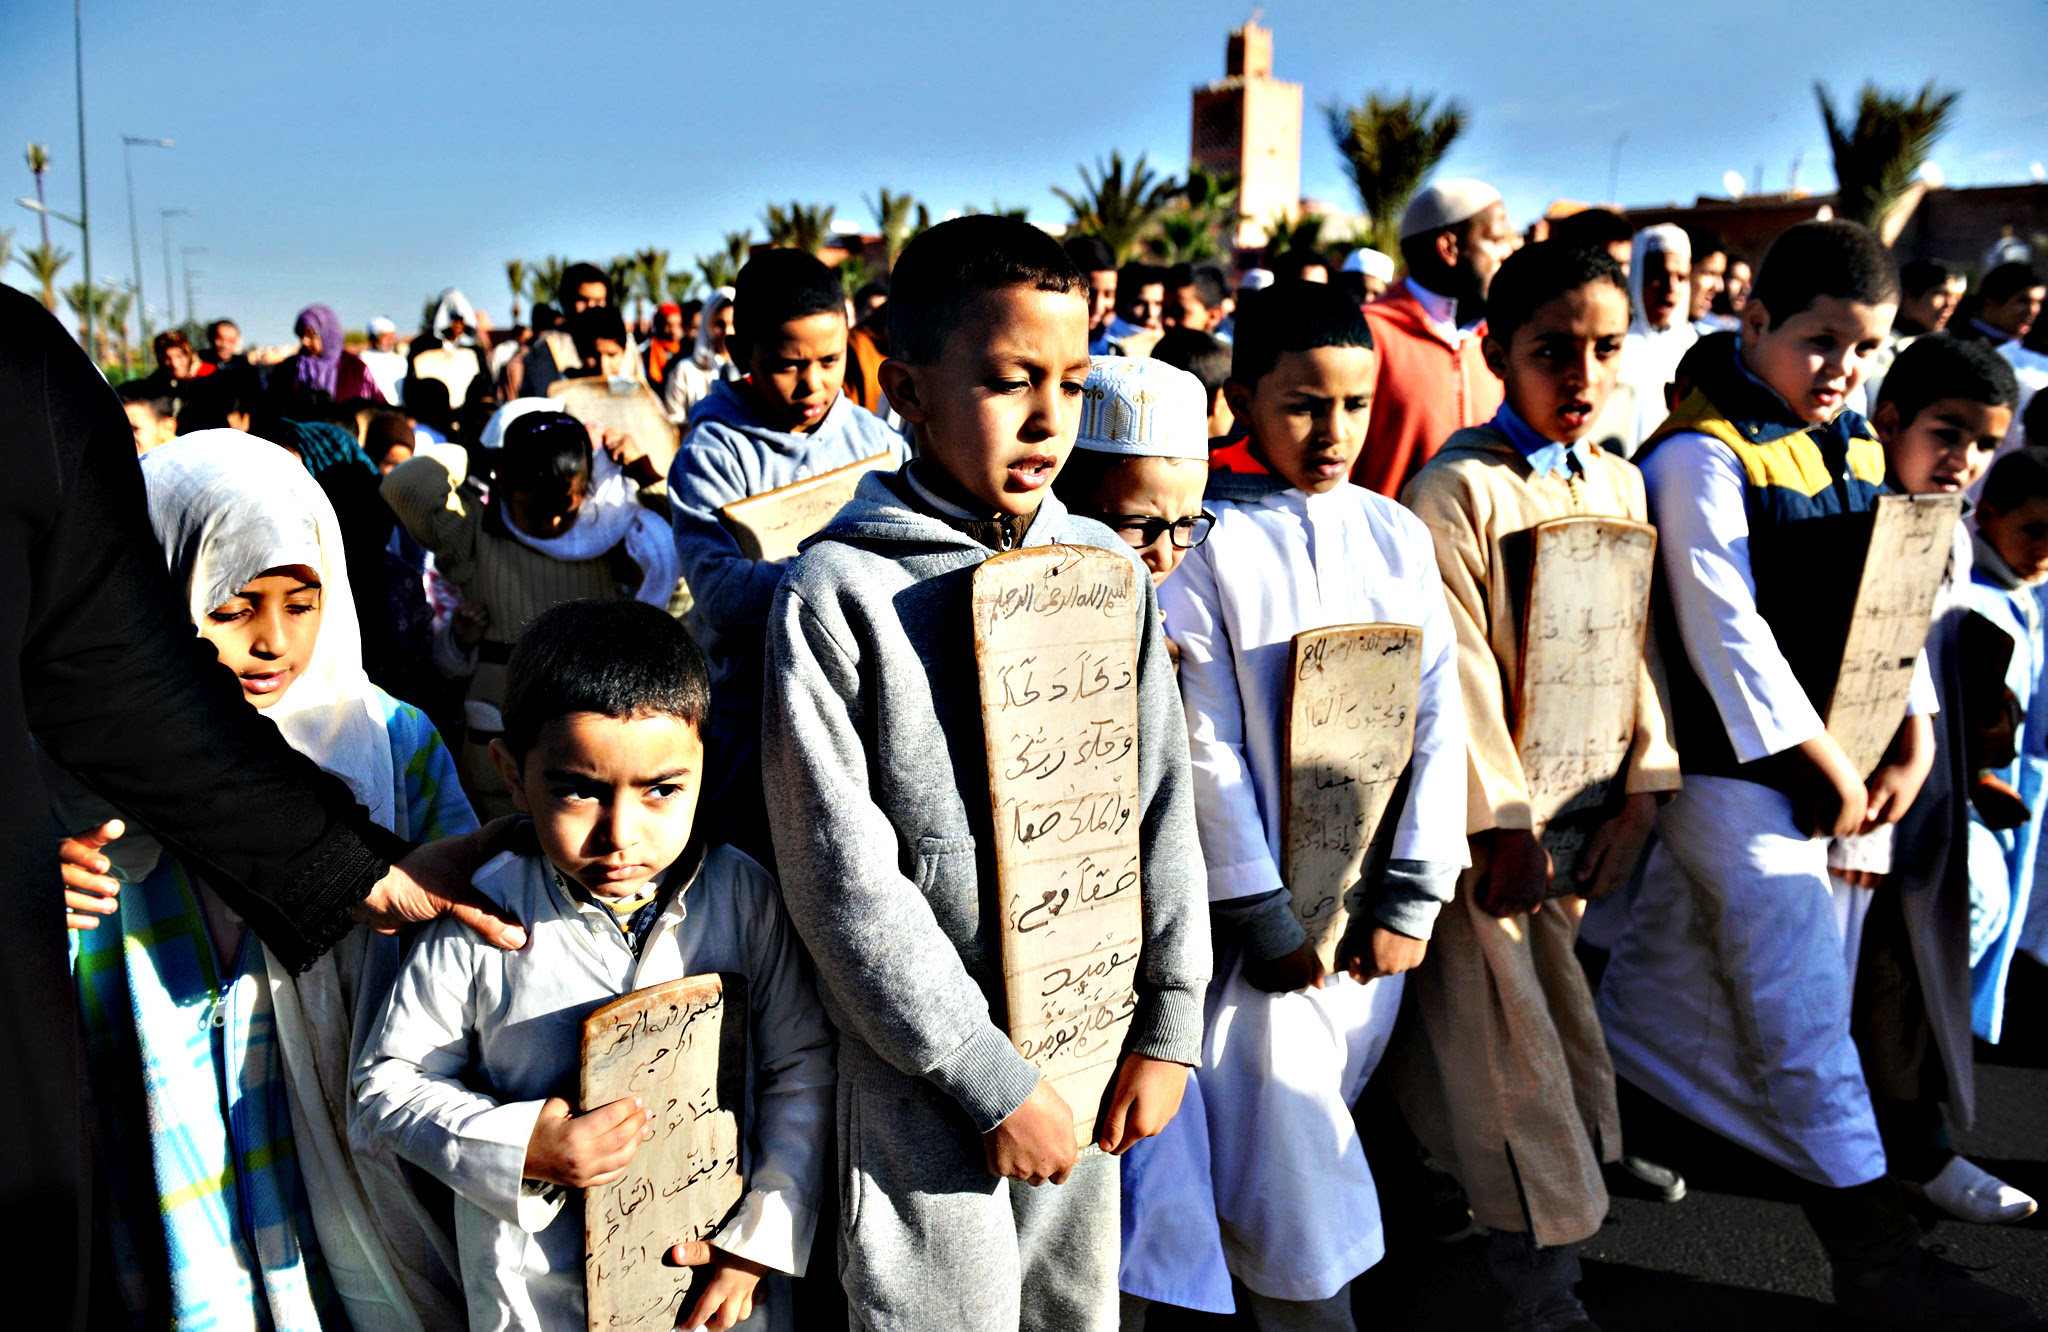 Young Moroccans pray for rain, Marrakesh, Morocco, 11 December 2015. The King of Morocco, Mohammed VI, called on the faithful to pray for rain in the Kingdom, which is suffering from a severe drought as a result of the depletion of the water table and is severly affecting agriculture in the country, forcing people to move to cities in search of work